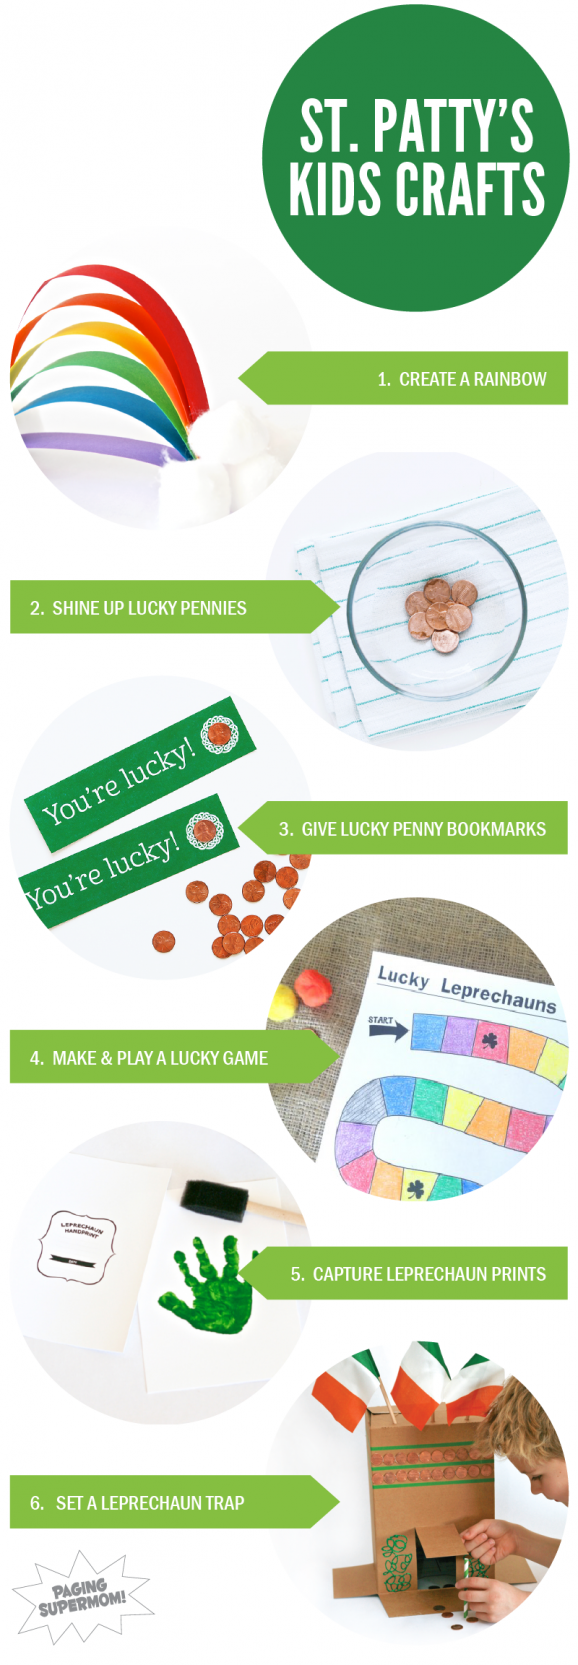 St. Patrick's Day Kids Craft Round Up via @PagingSupermom